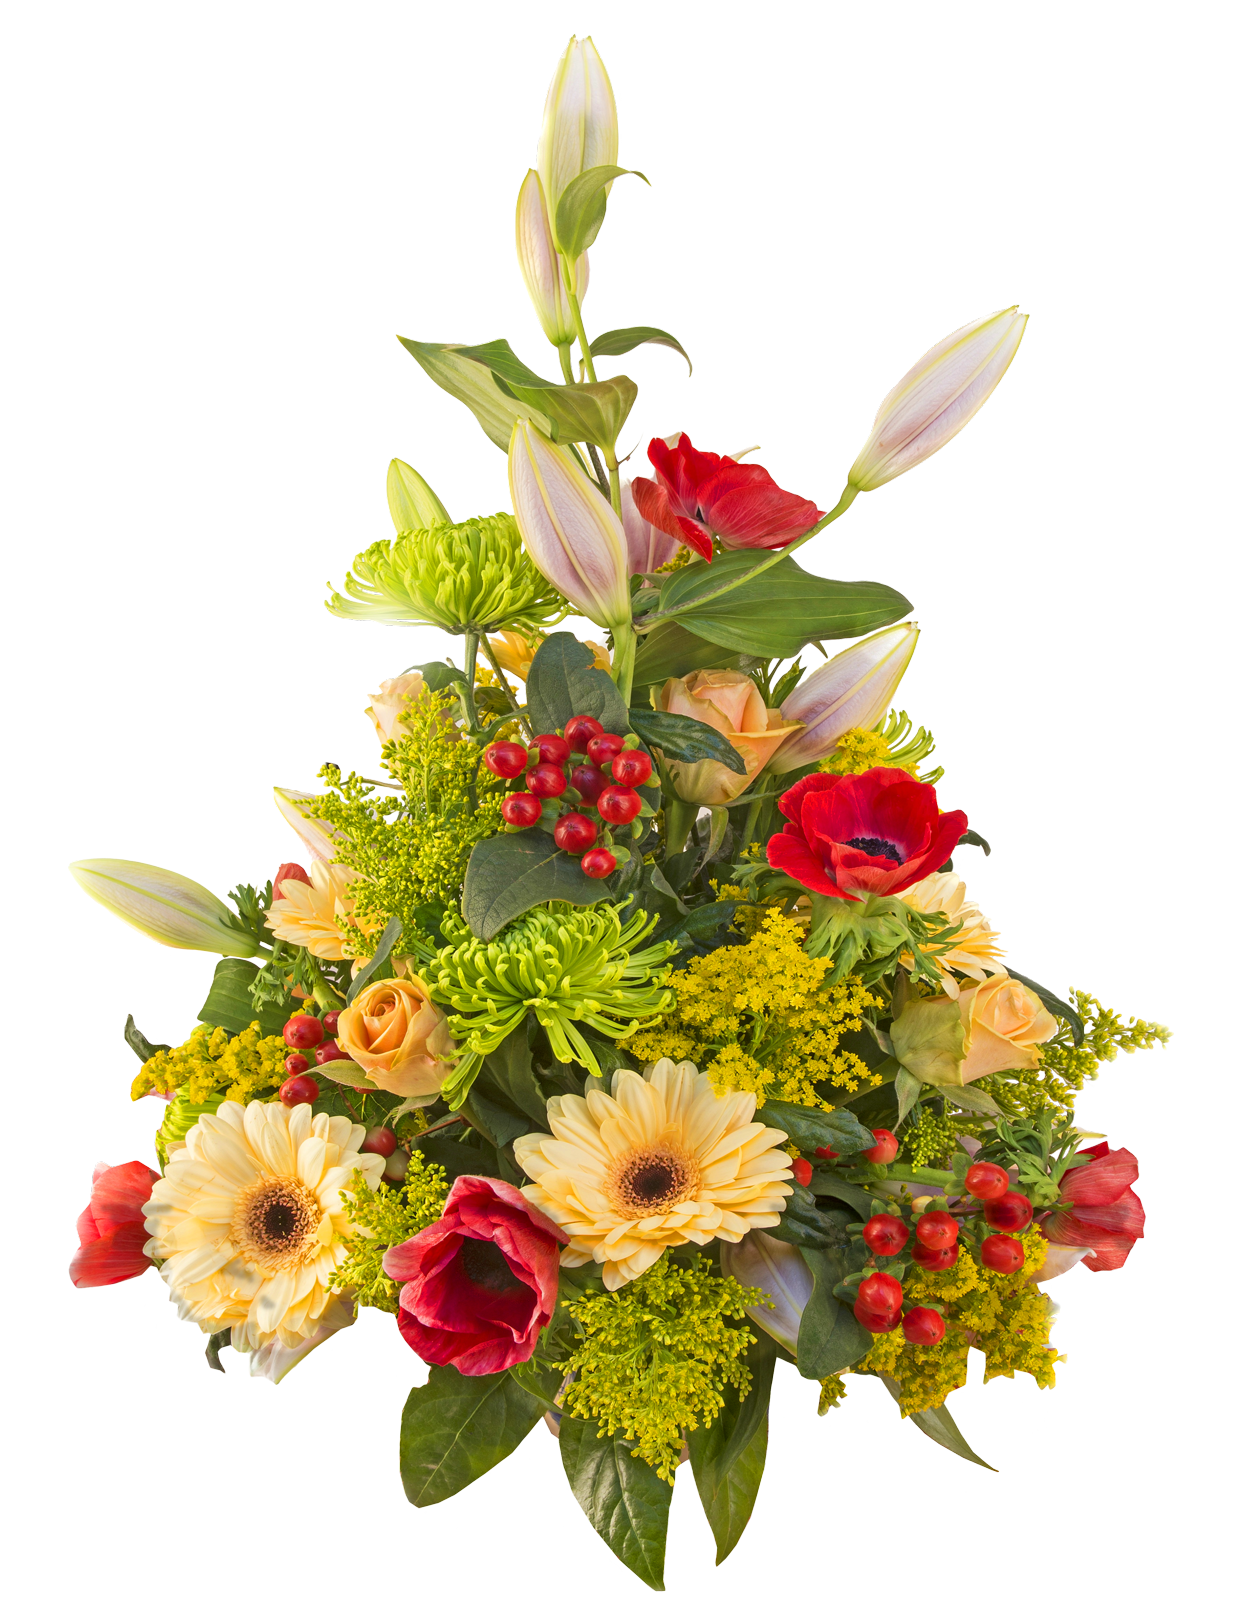 Bouquet of flowers images. Flower bunch png